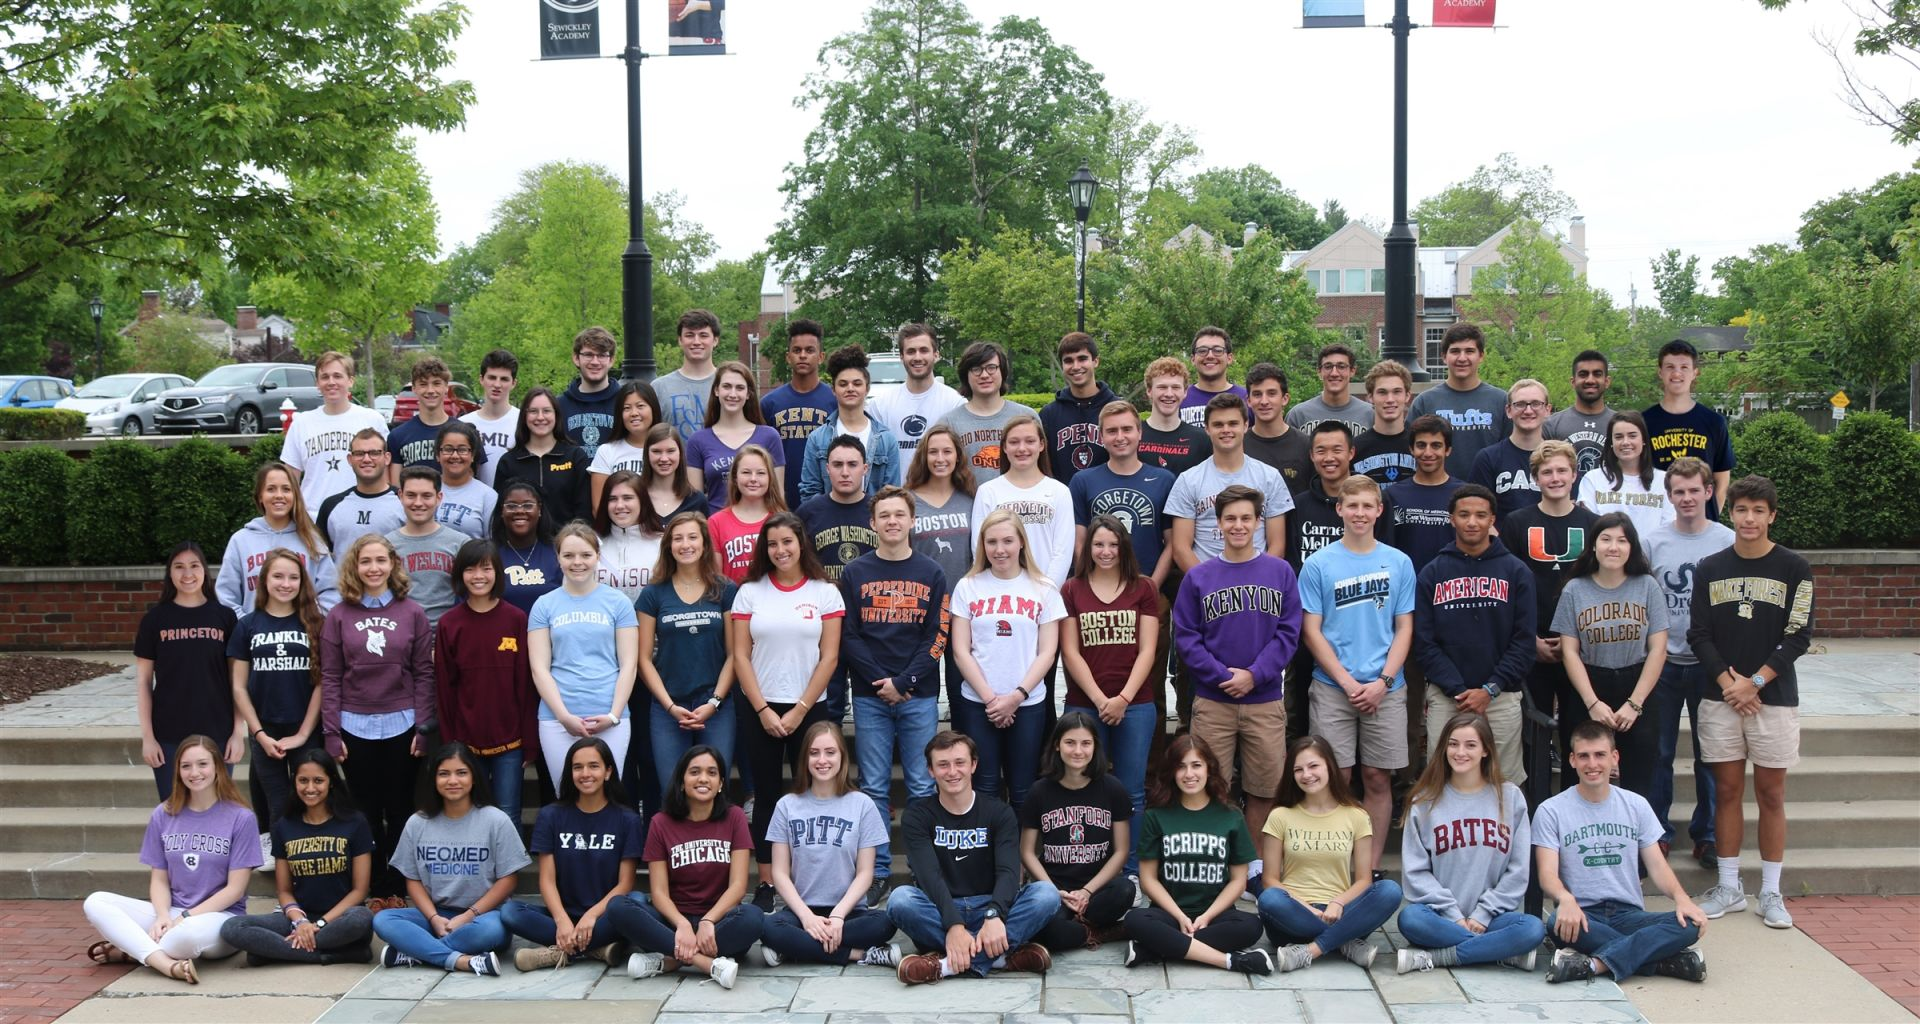 Check out the Class of 2017 wearing shirts representing their college choices.